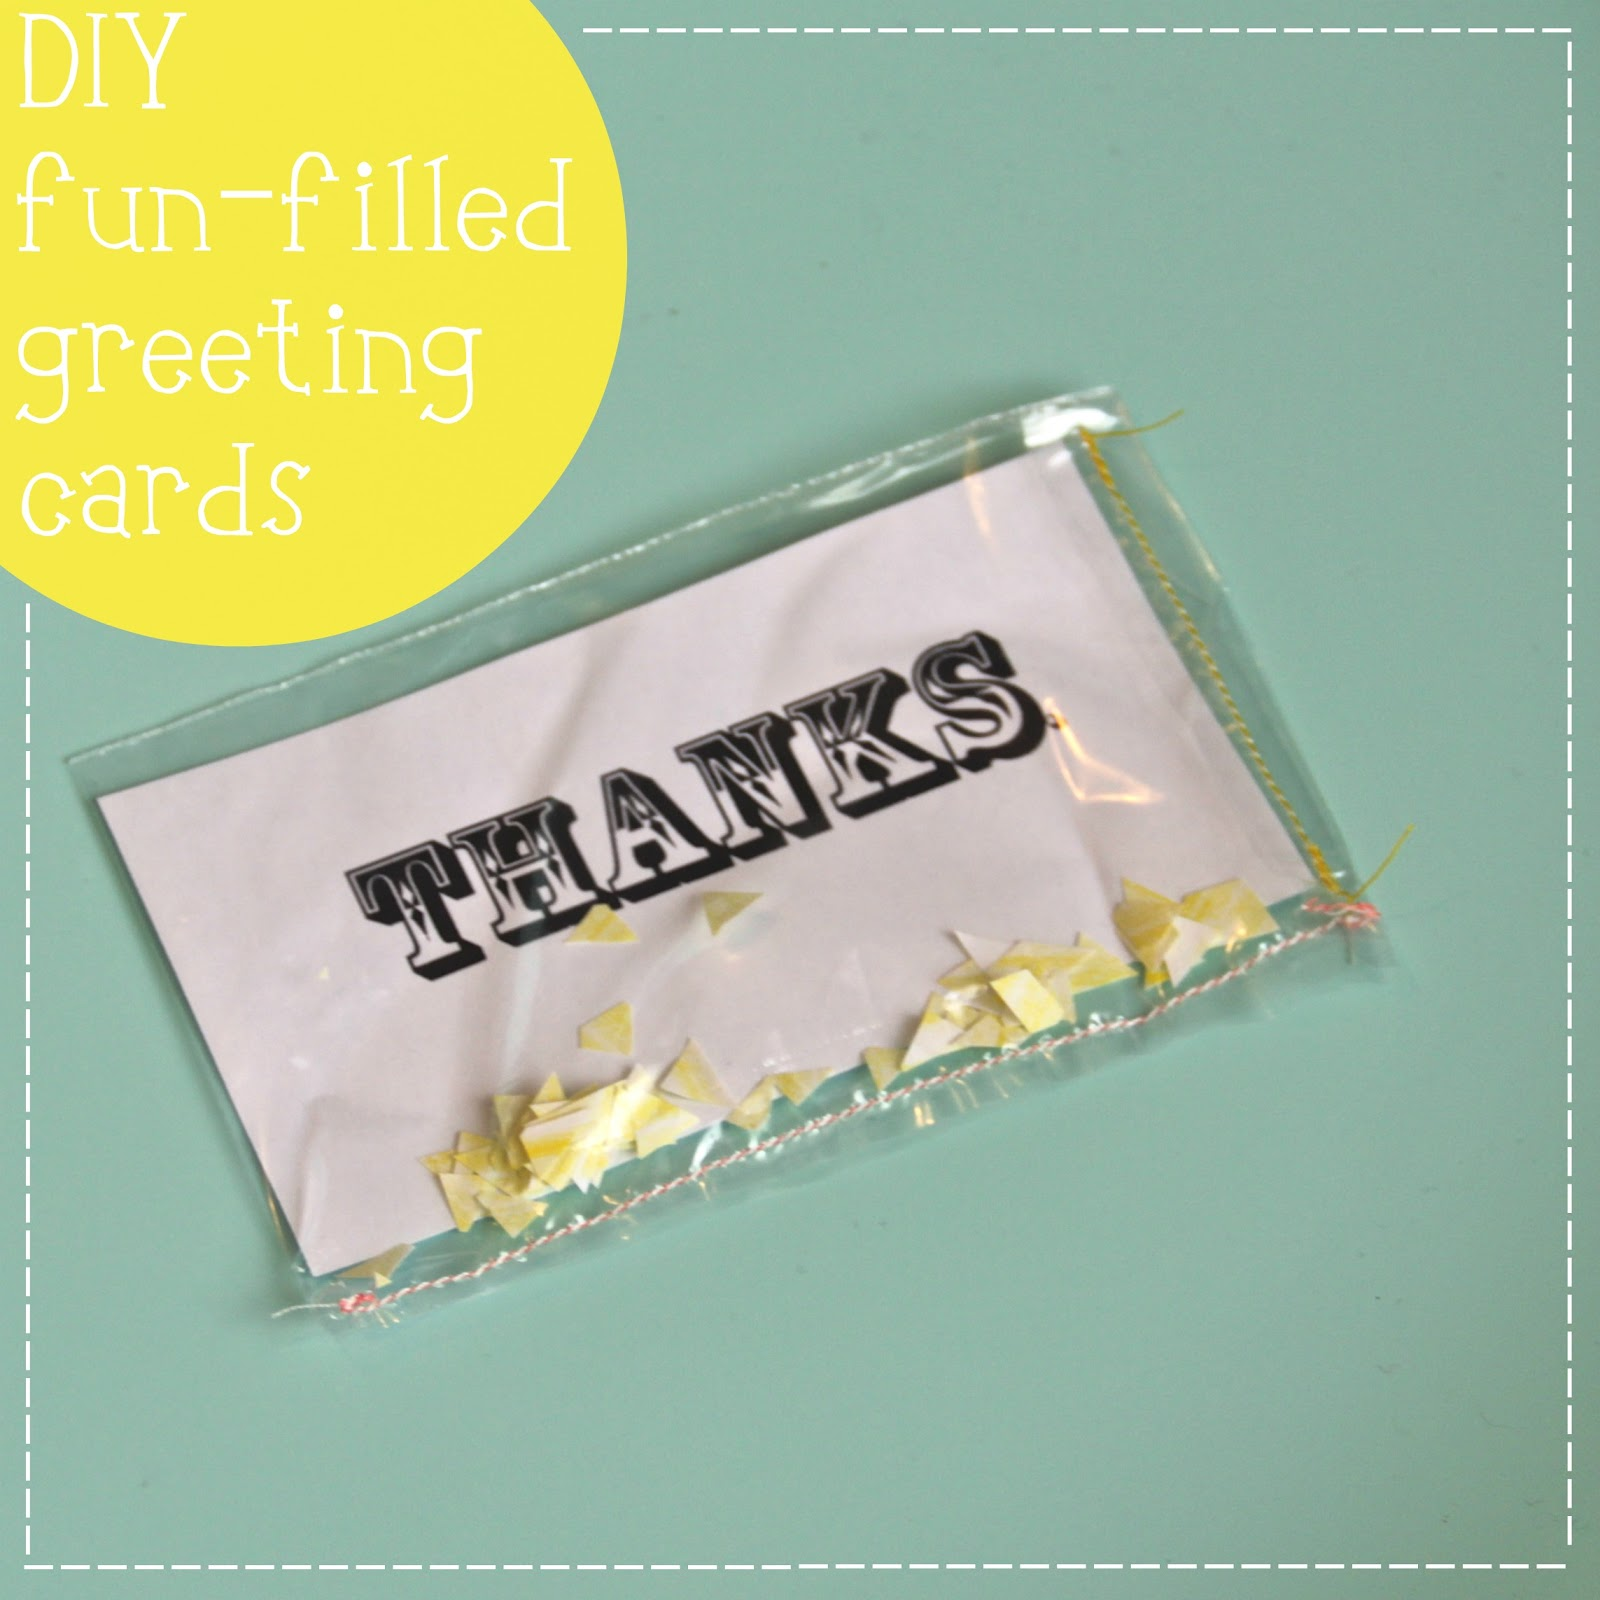 Oh sweet joy handmade monday greetings confetti todays handmade monday diy project combines two of my favorite things confetti stationery enjoy m4hsunfo